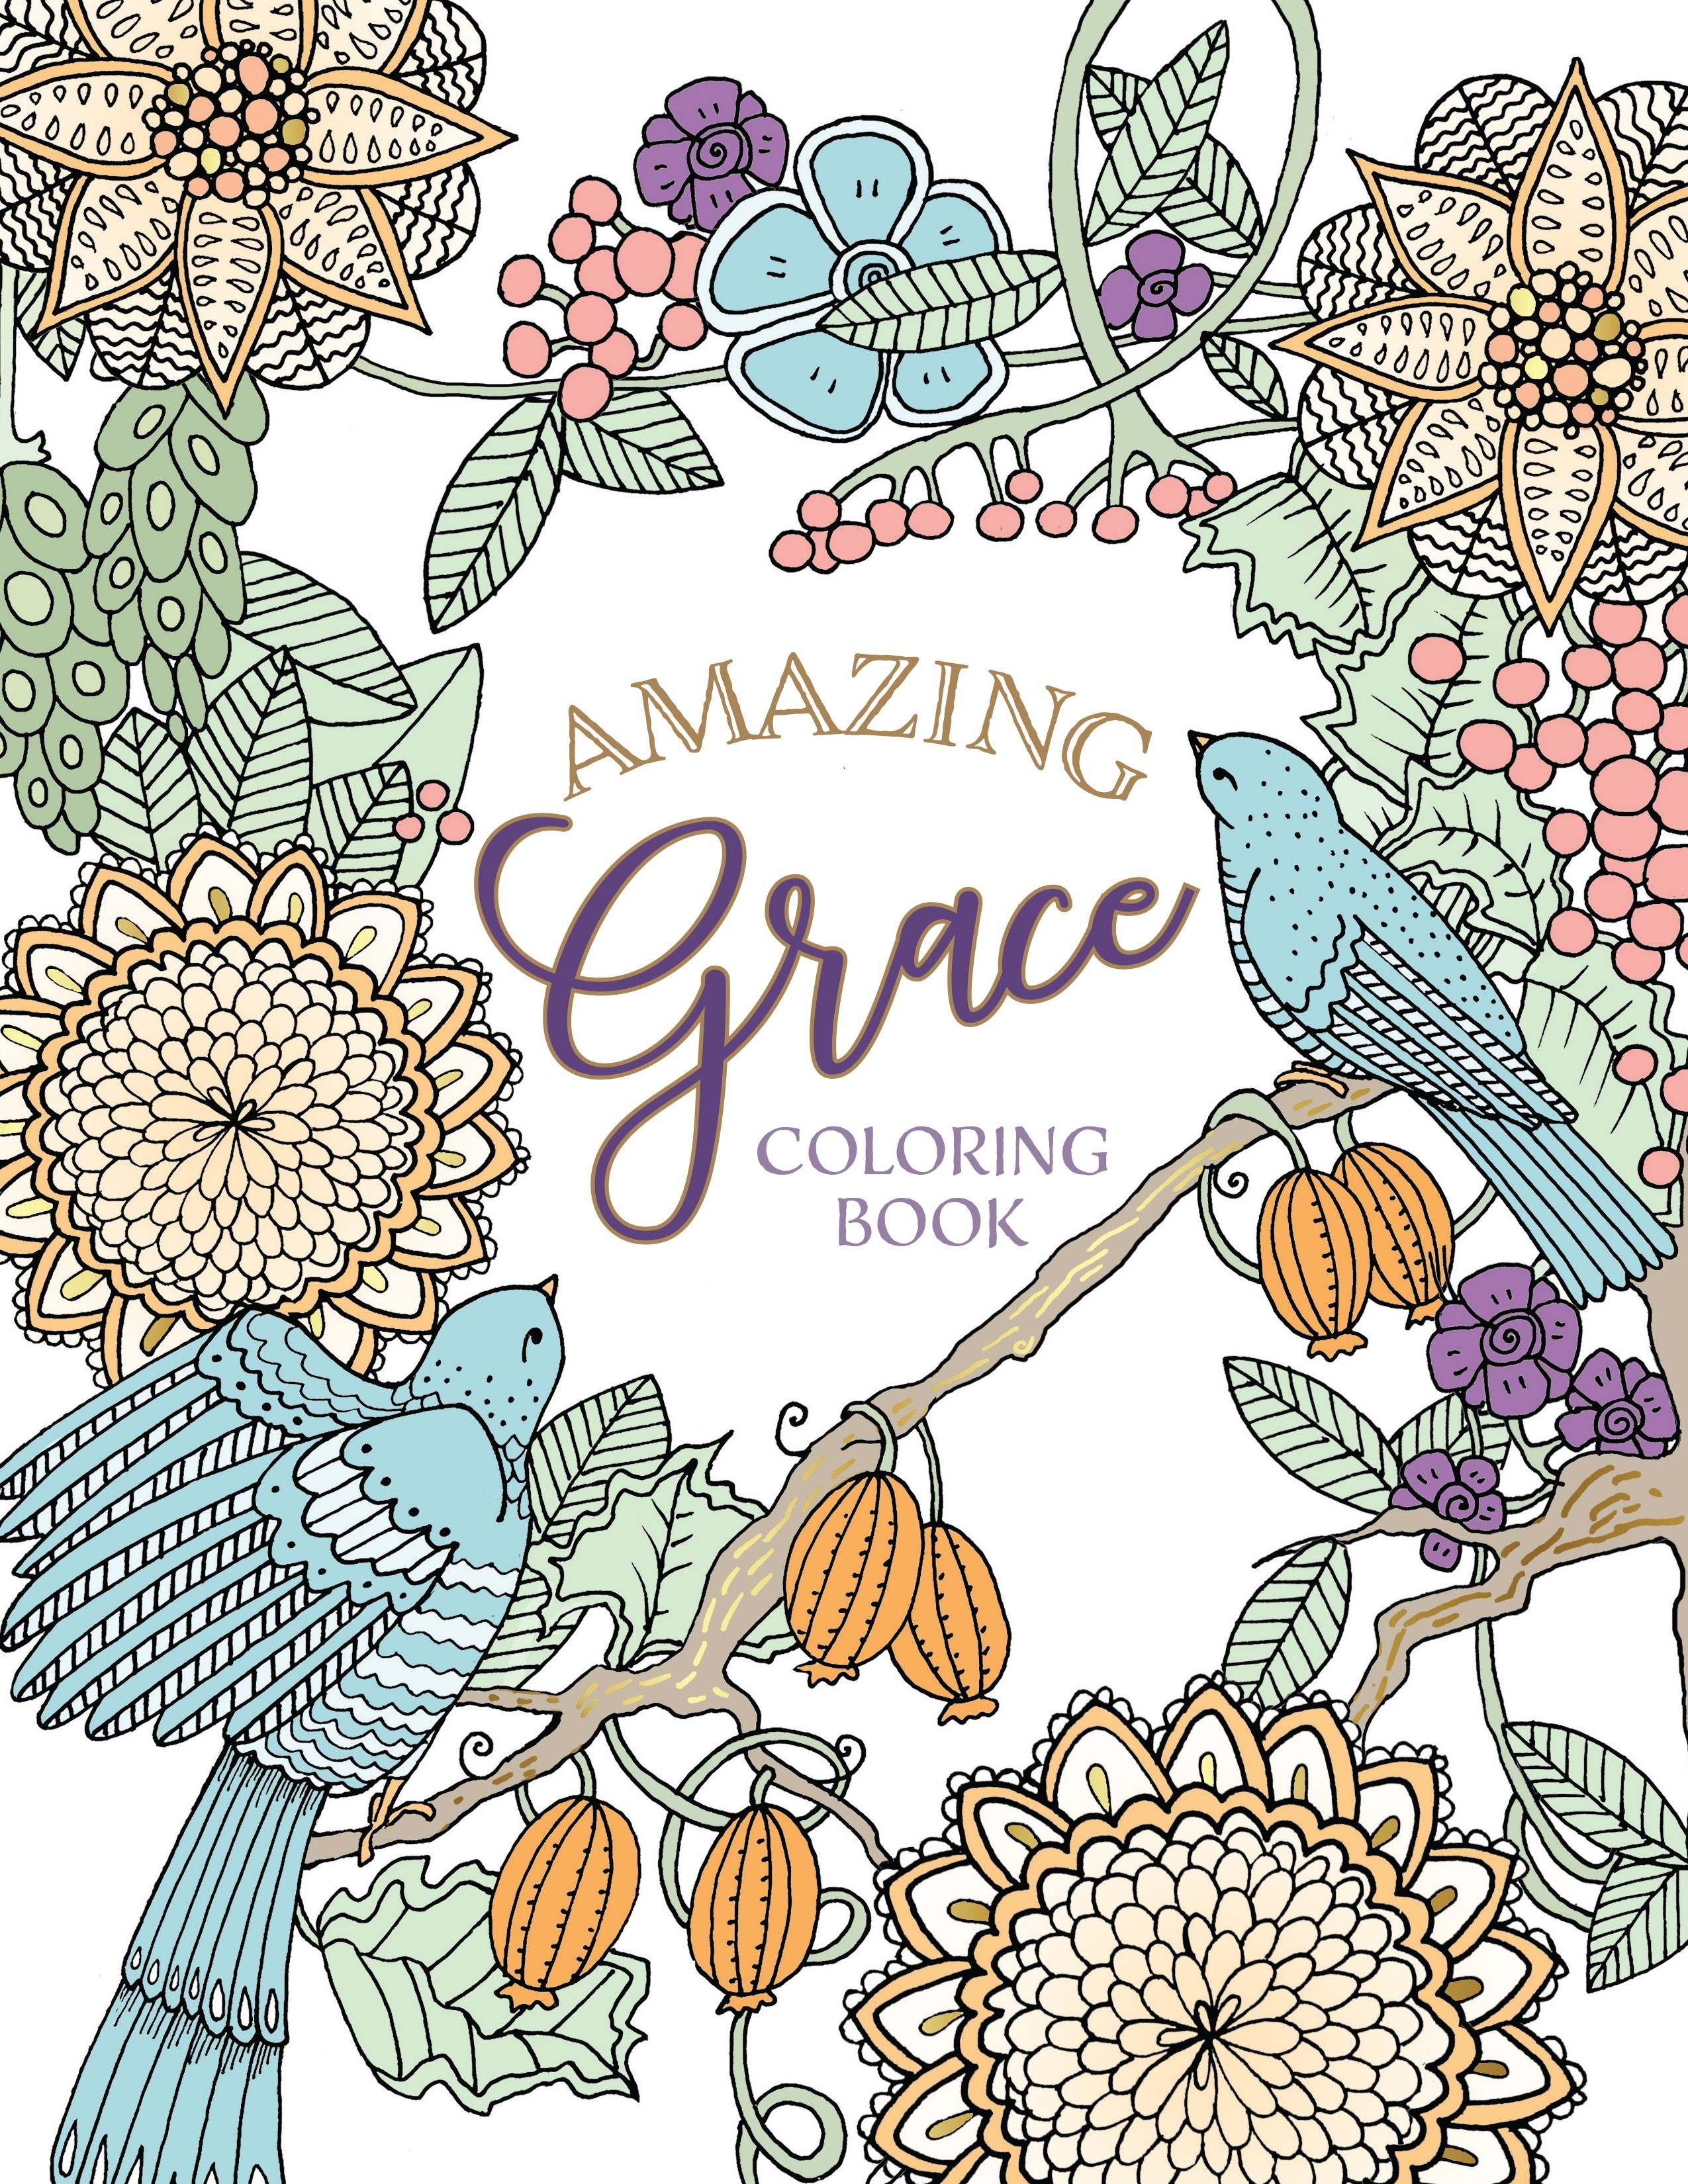 Amazing Grace Coloring Book (Majestic Expressions)